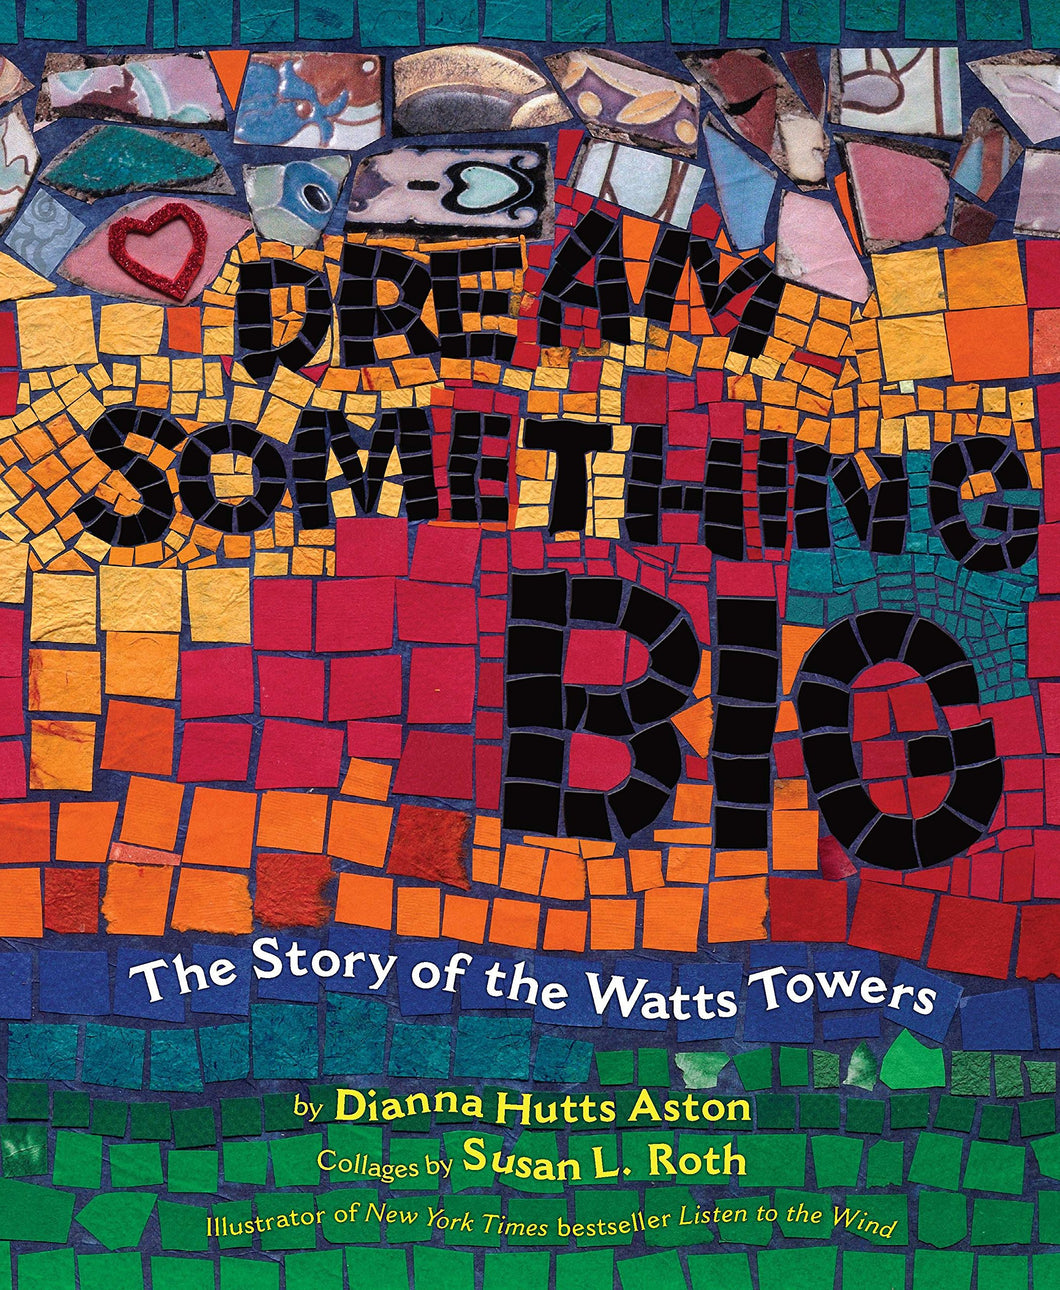 Dream Something Big: The Story of the Watts Towers by Dianna Hutts Aston